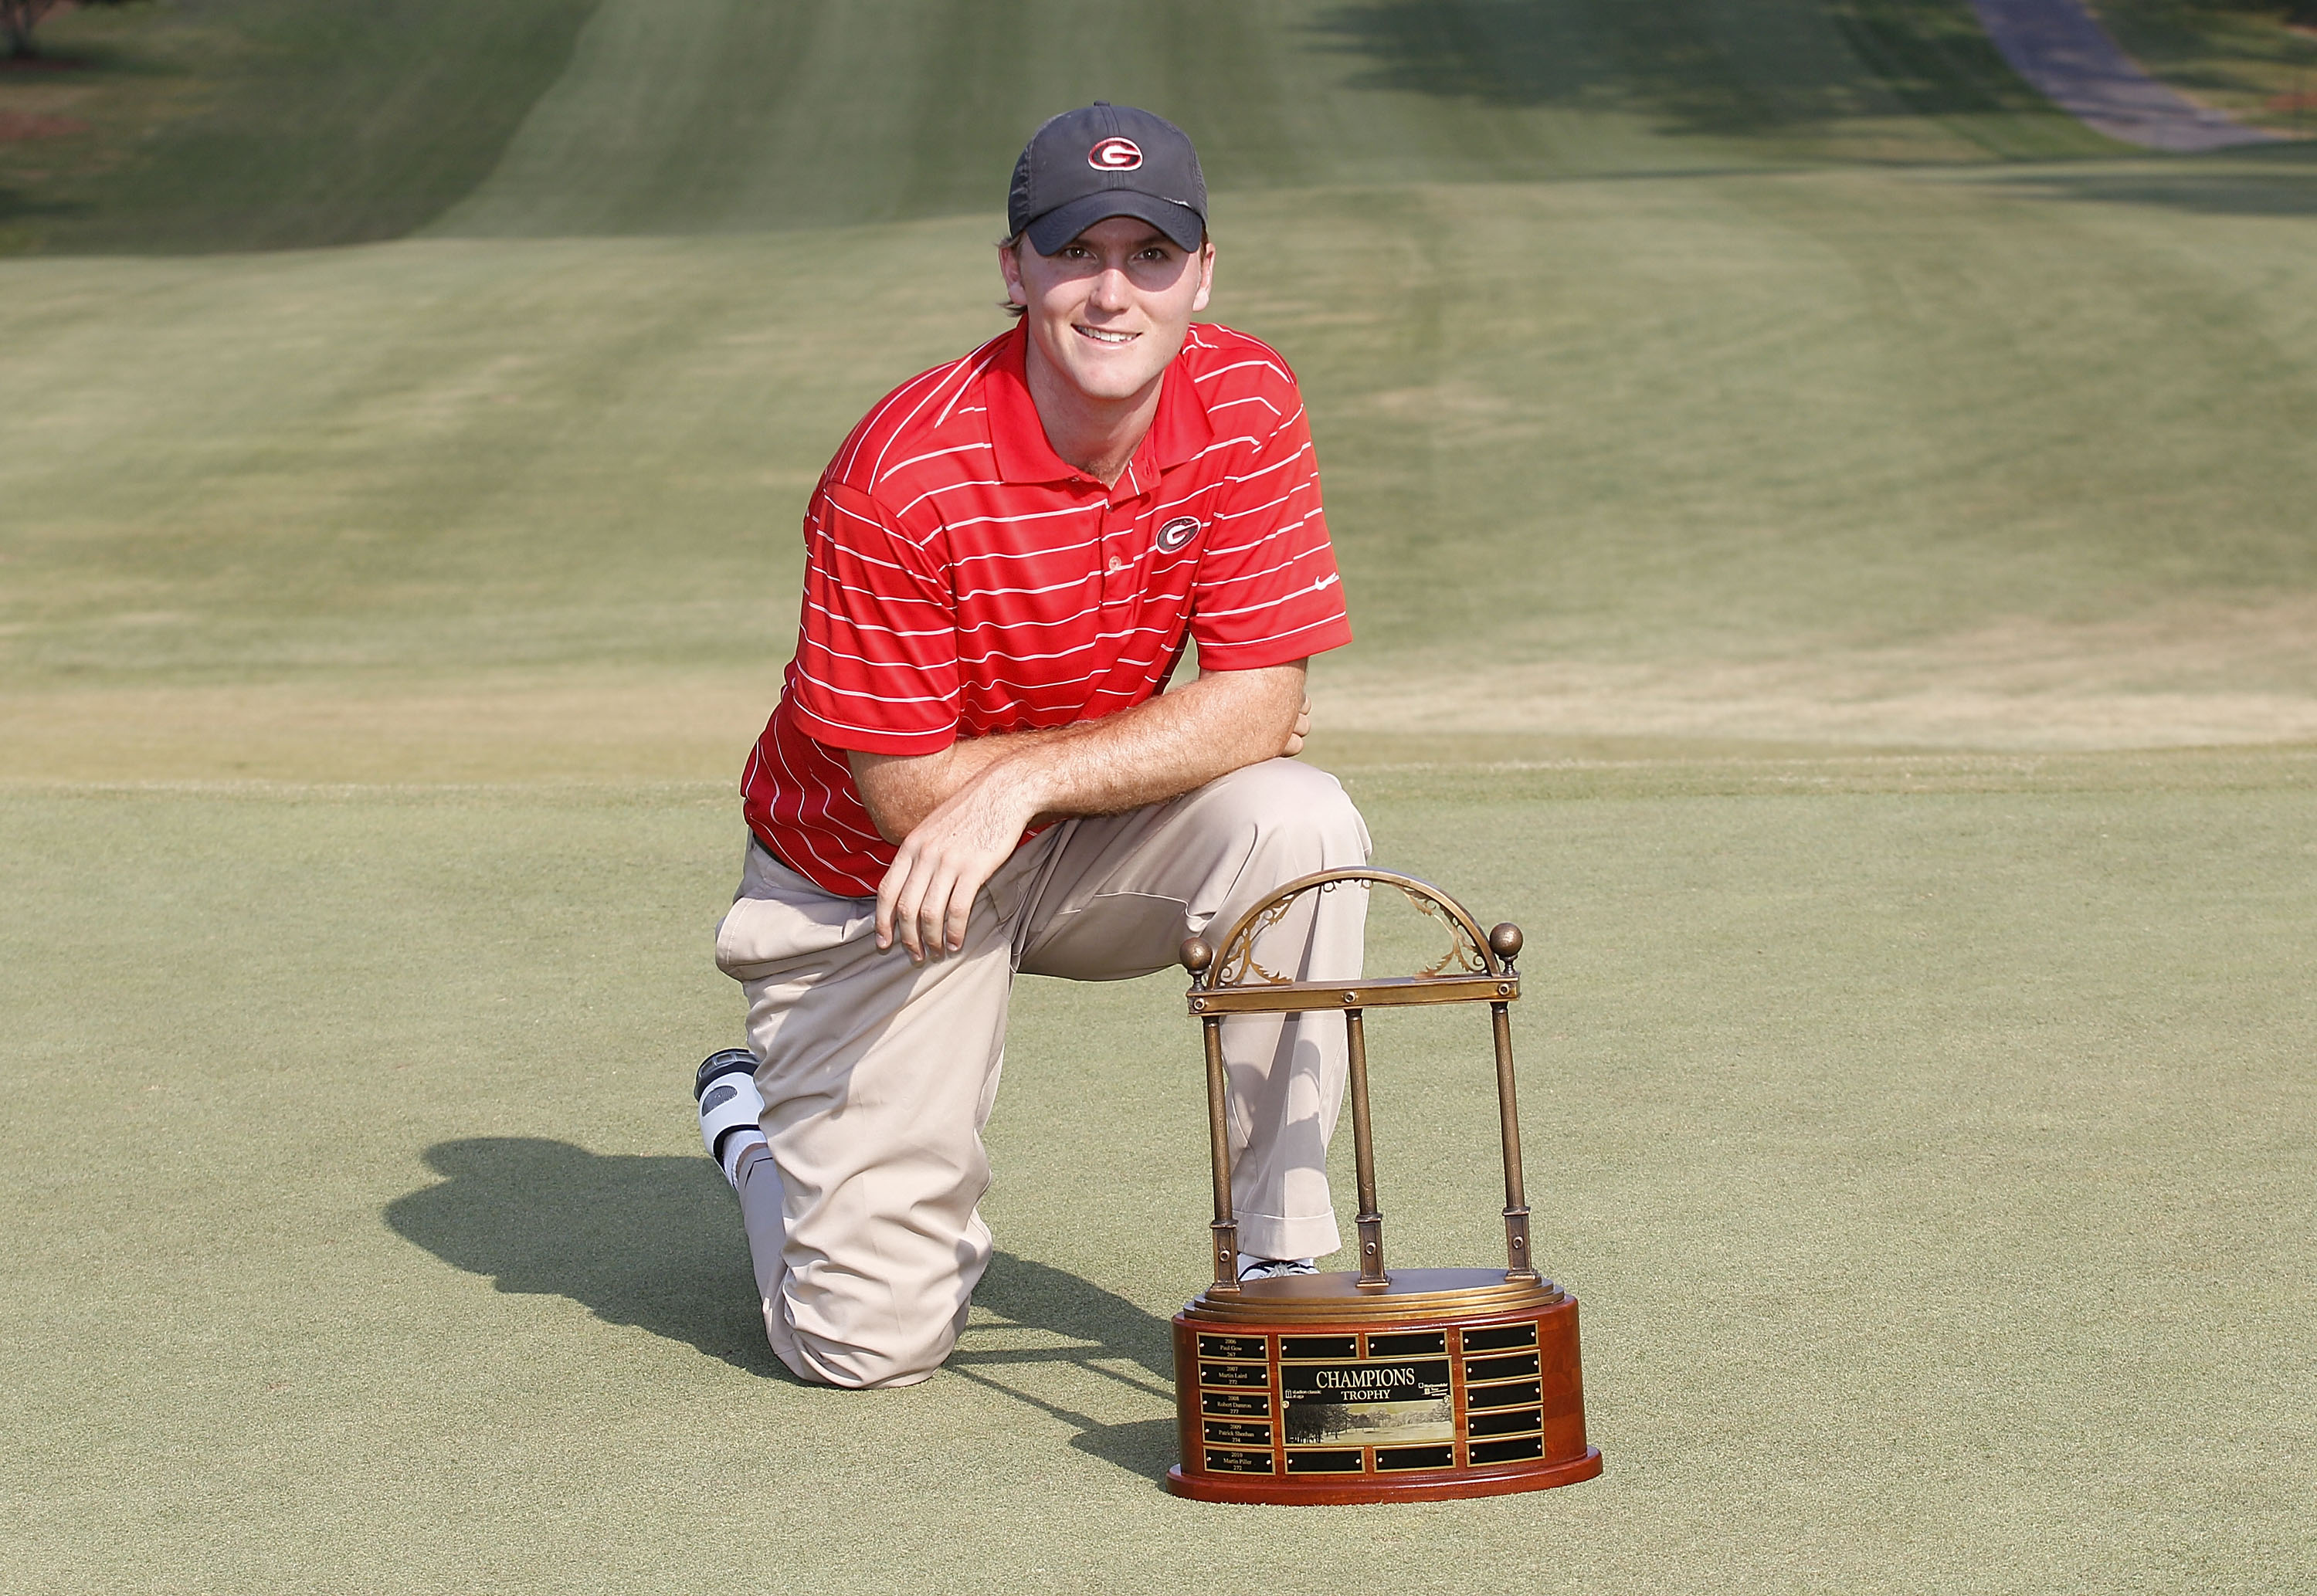 Russell Henley holds the trophy after winning the Stadion Classic at UGA held at the University of Georgia Golf Course on May 8, 2011 in Athens, Georgia. Henley is an amateur and a student at the University of Georgia.